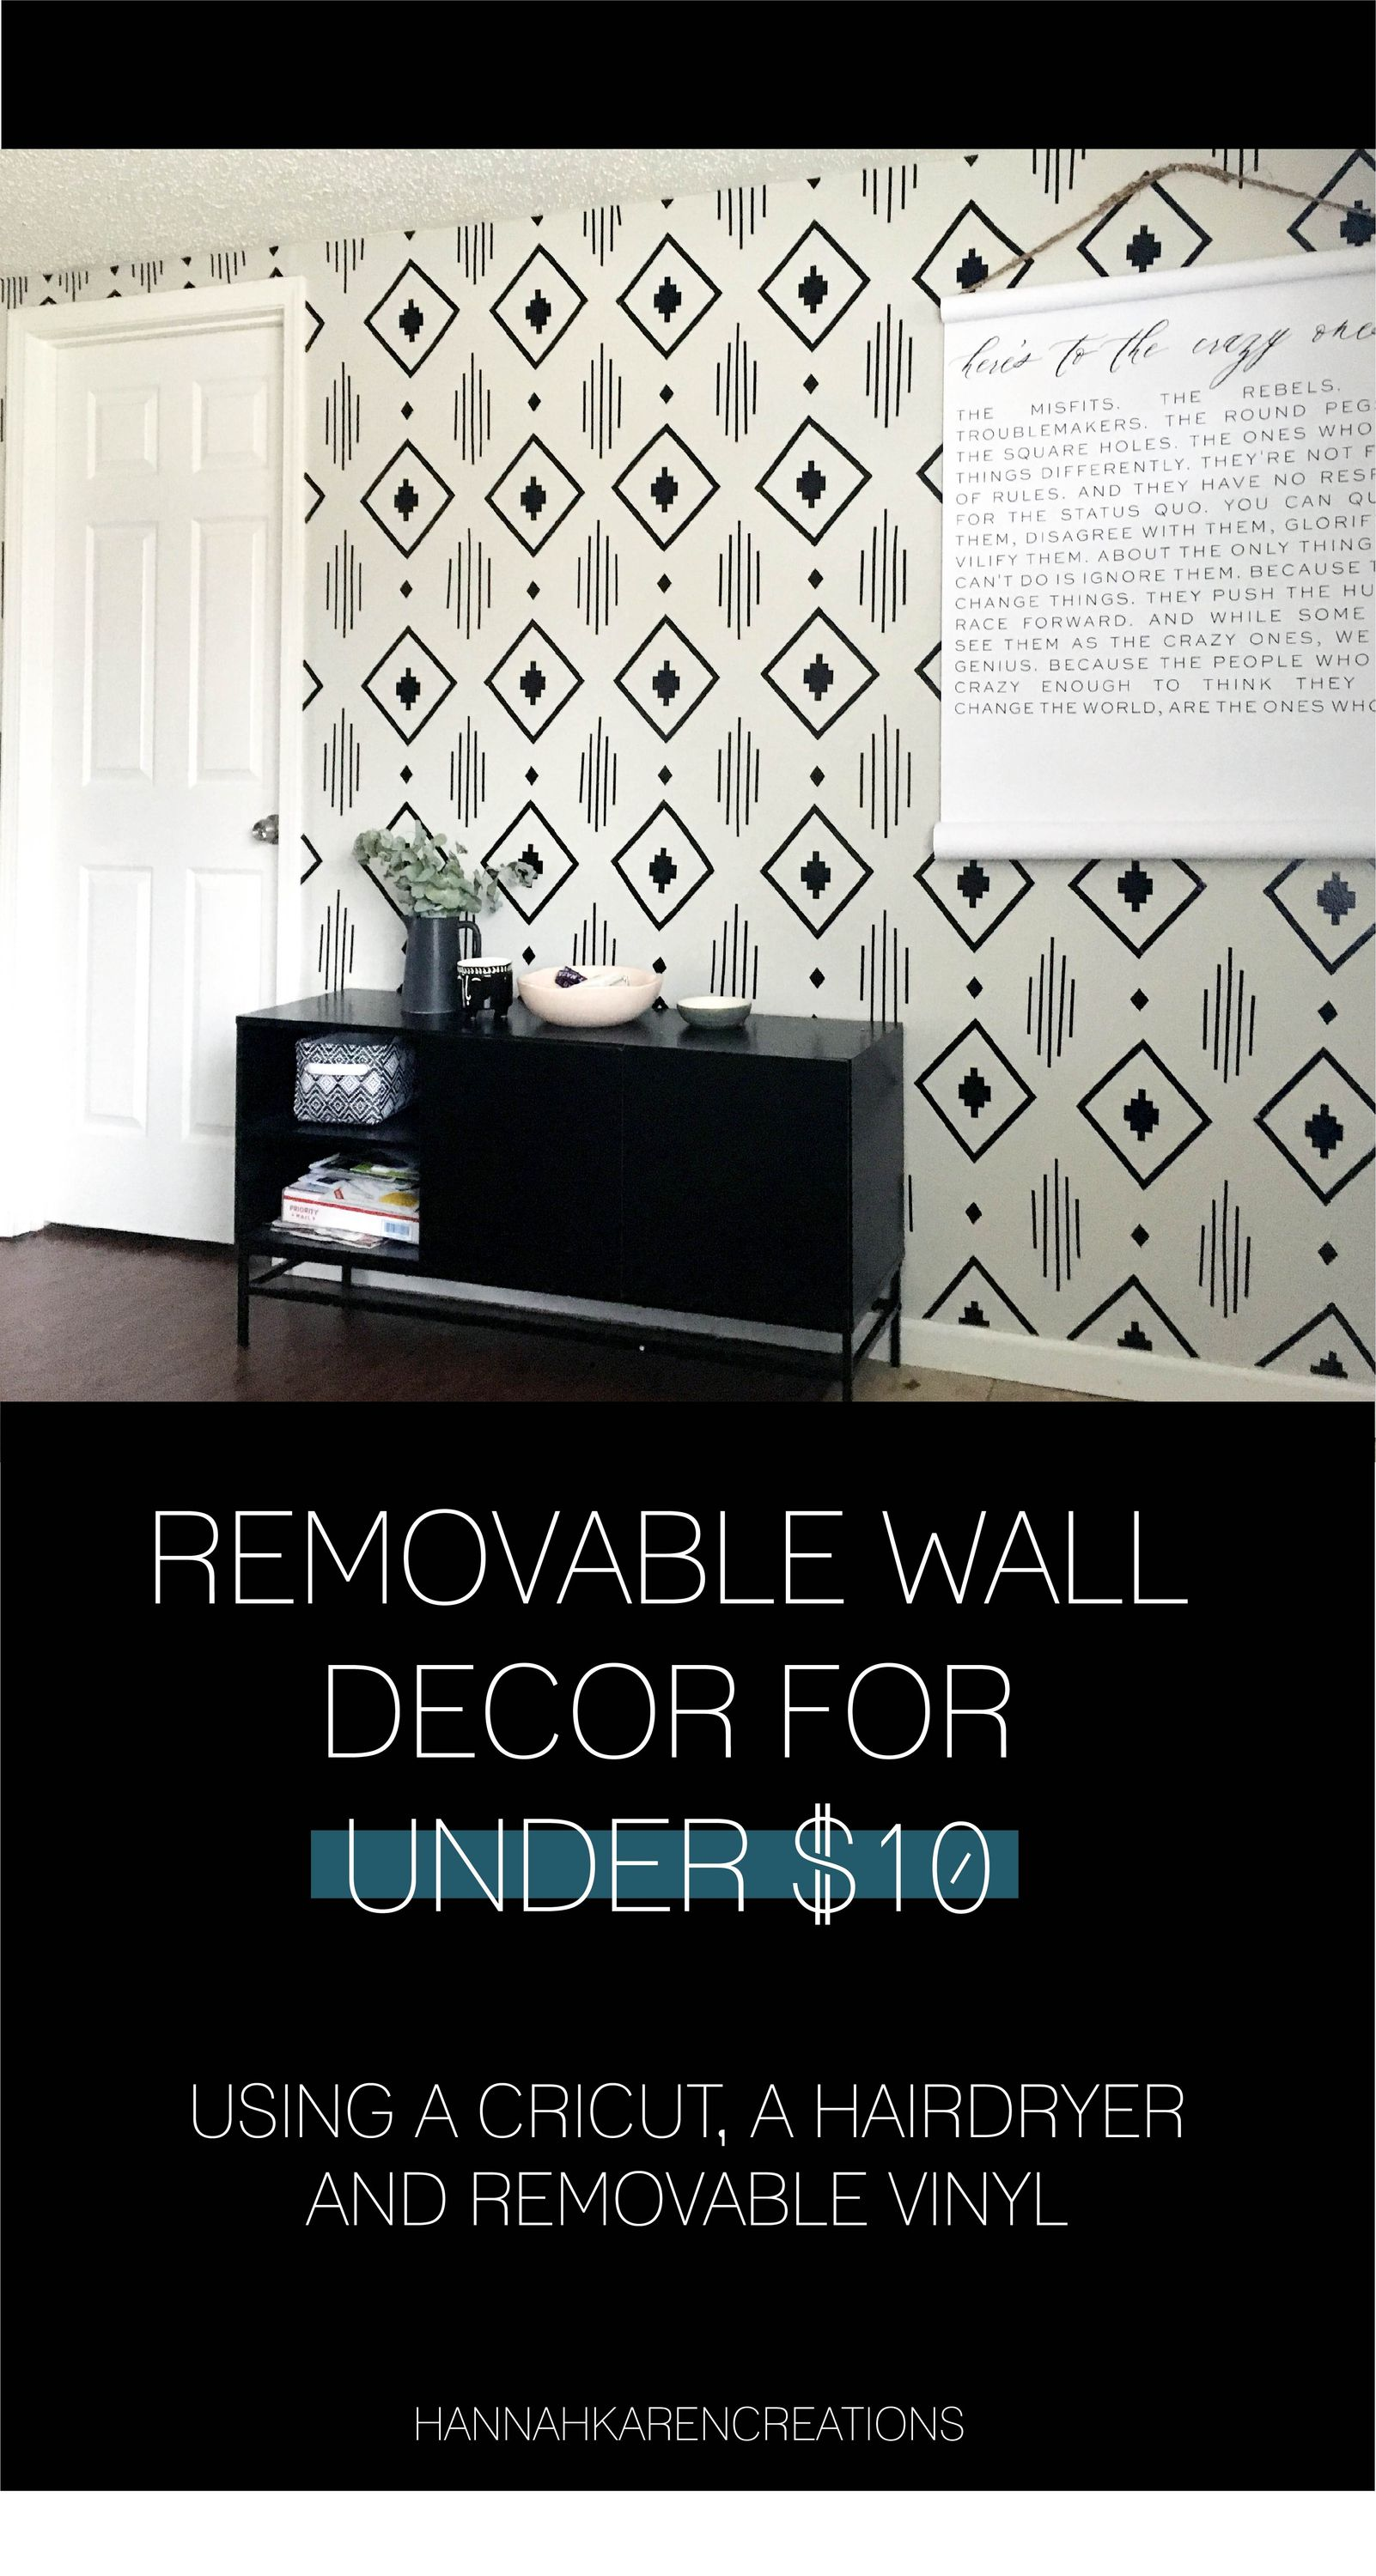 Removable Wall Decal Under 10 Wall Decal Wall Vinyl Vinyl Stickers Wall Stickers Home Decor Cricut C Removable Wall Decals Removable Wall Wall Decals